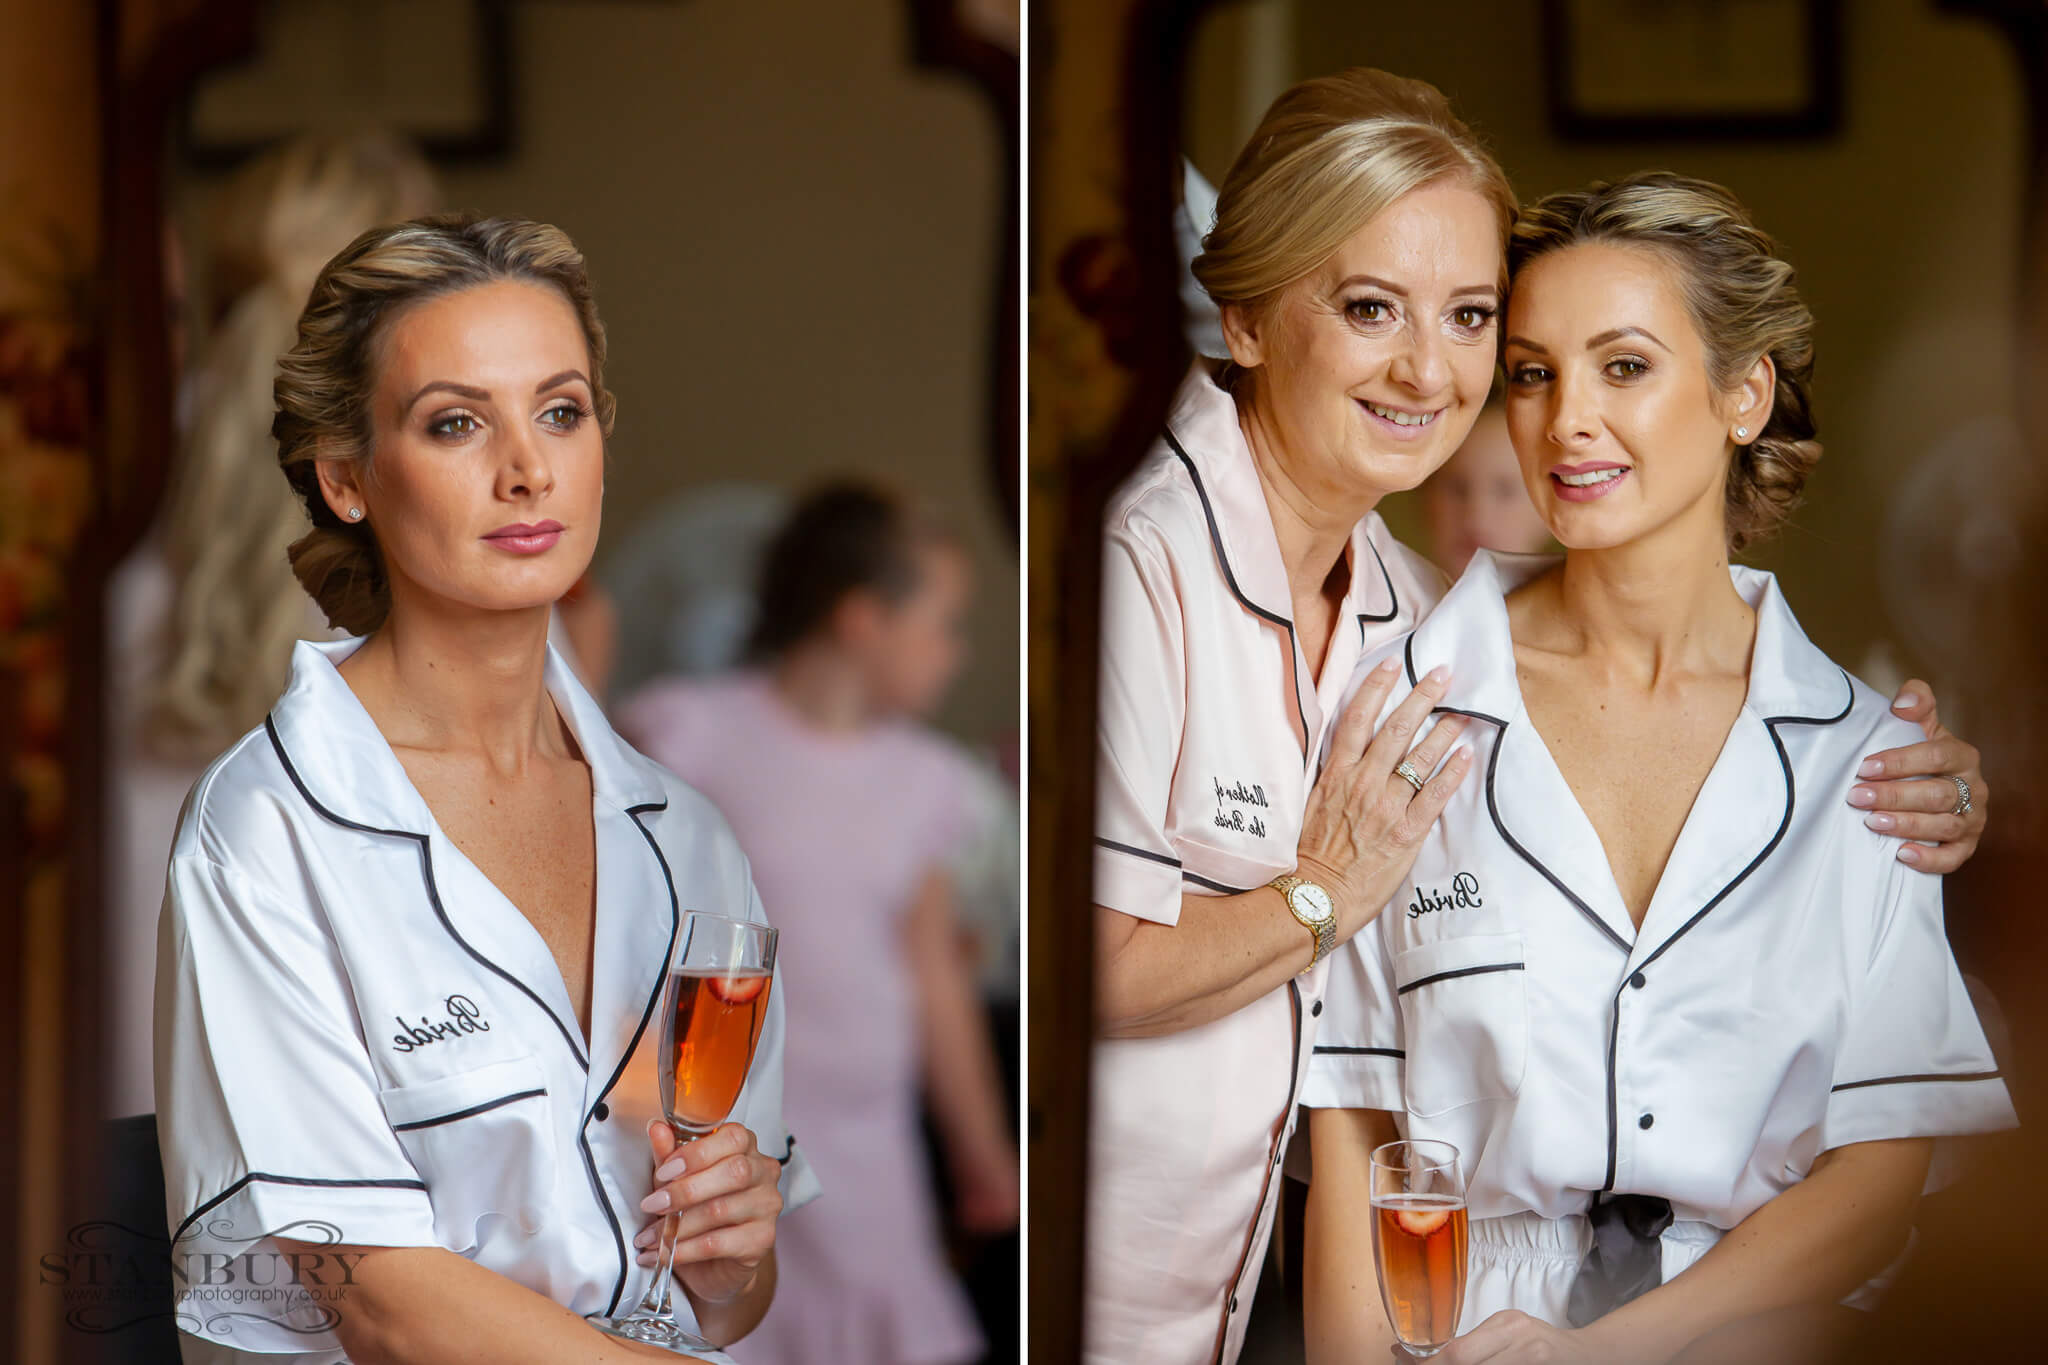 knowsley-hall-wedding-stanbury-photography-004